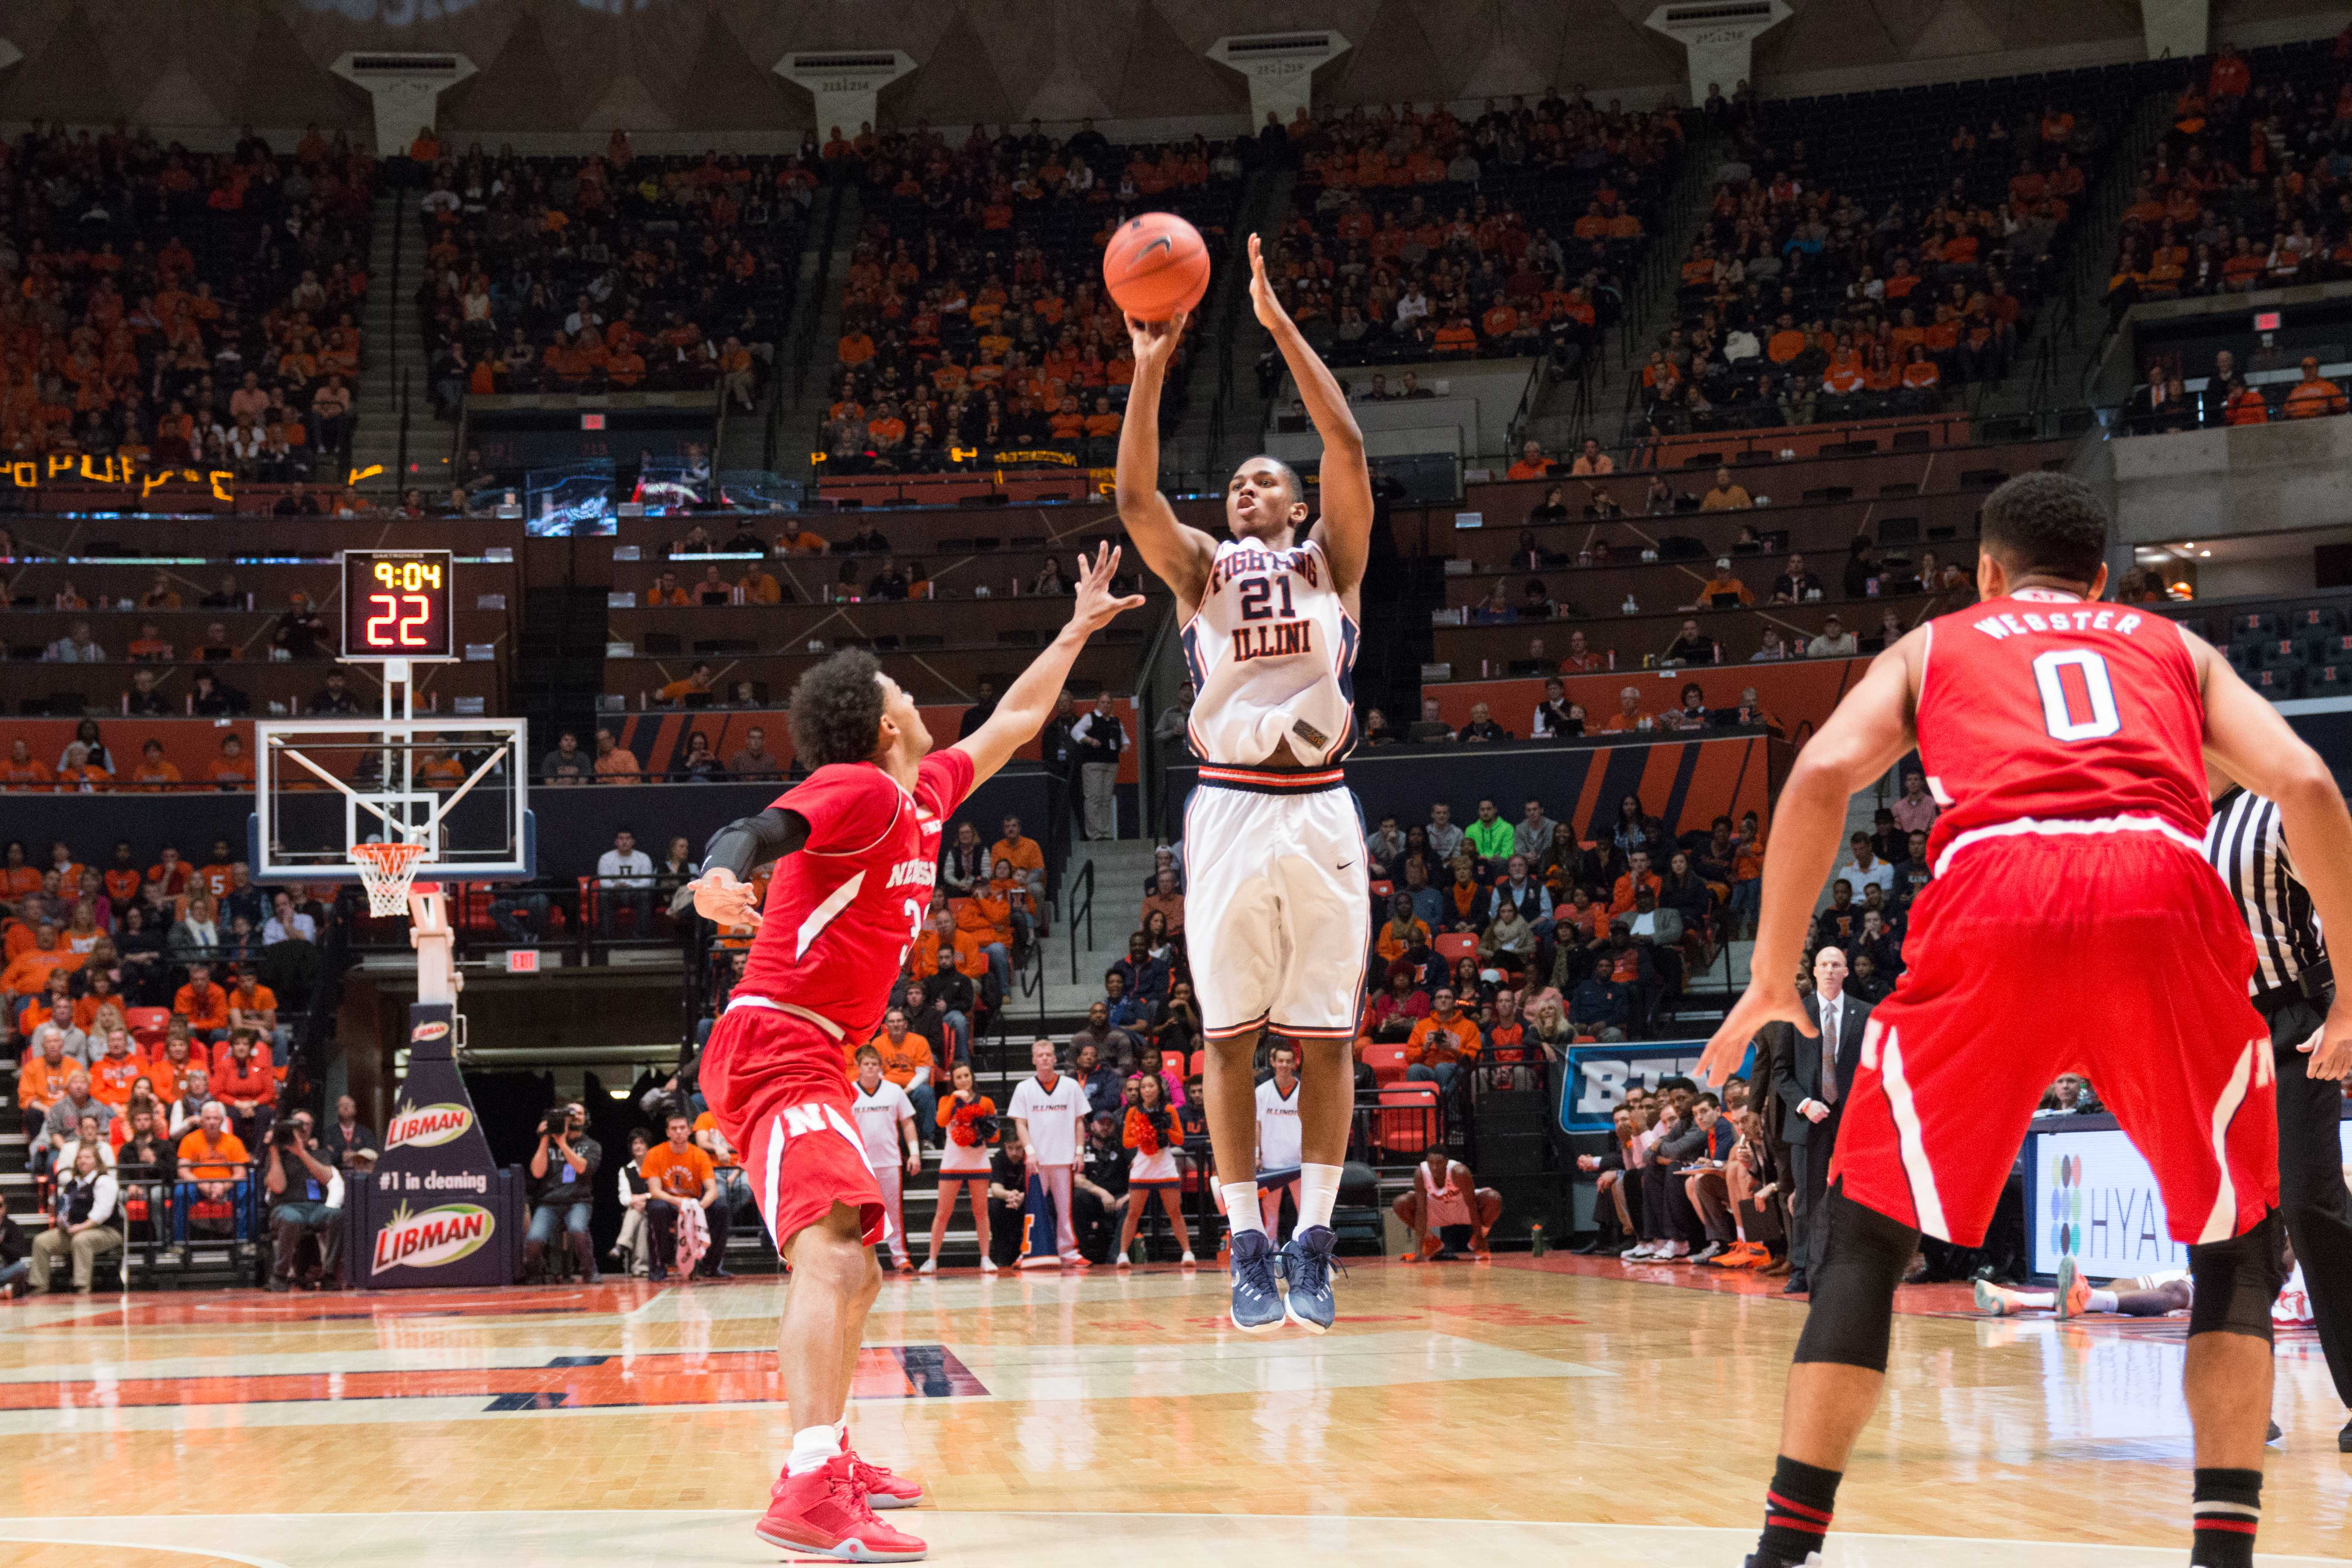 Illinois' Malcolm Hill shoots a 3-pointer over Nebraska's Shavon Shields during the Illini's 78-67 loss to the Huskers at State Farm Center on Saturday.